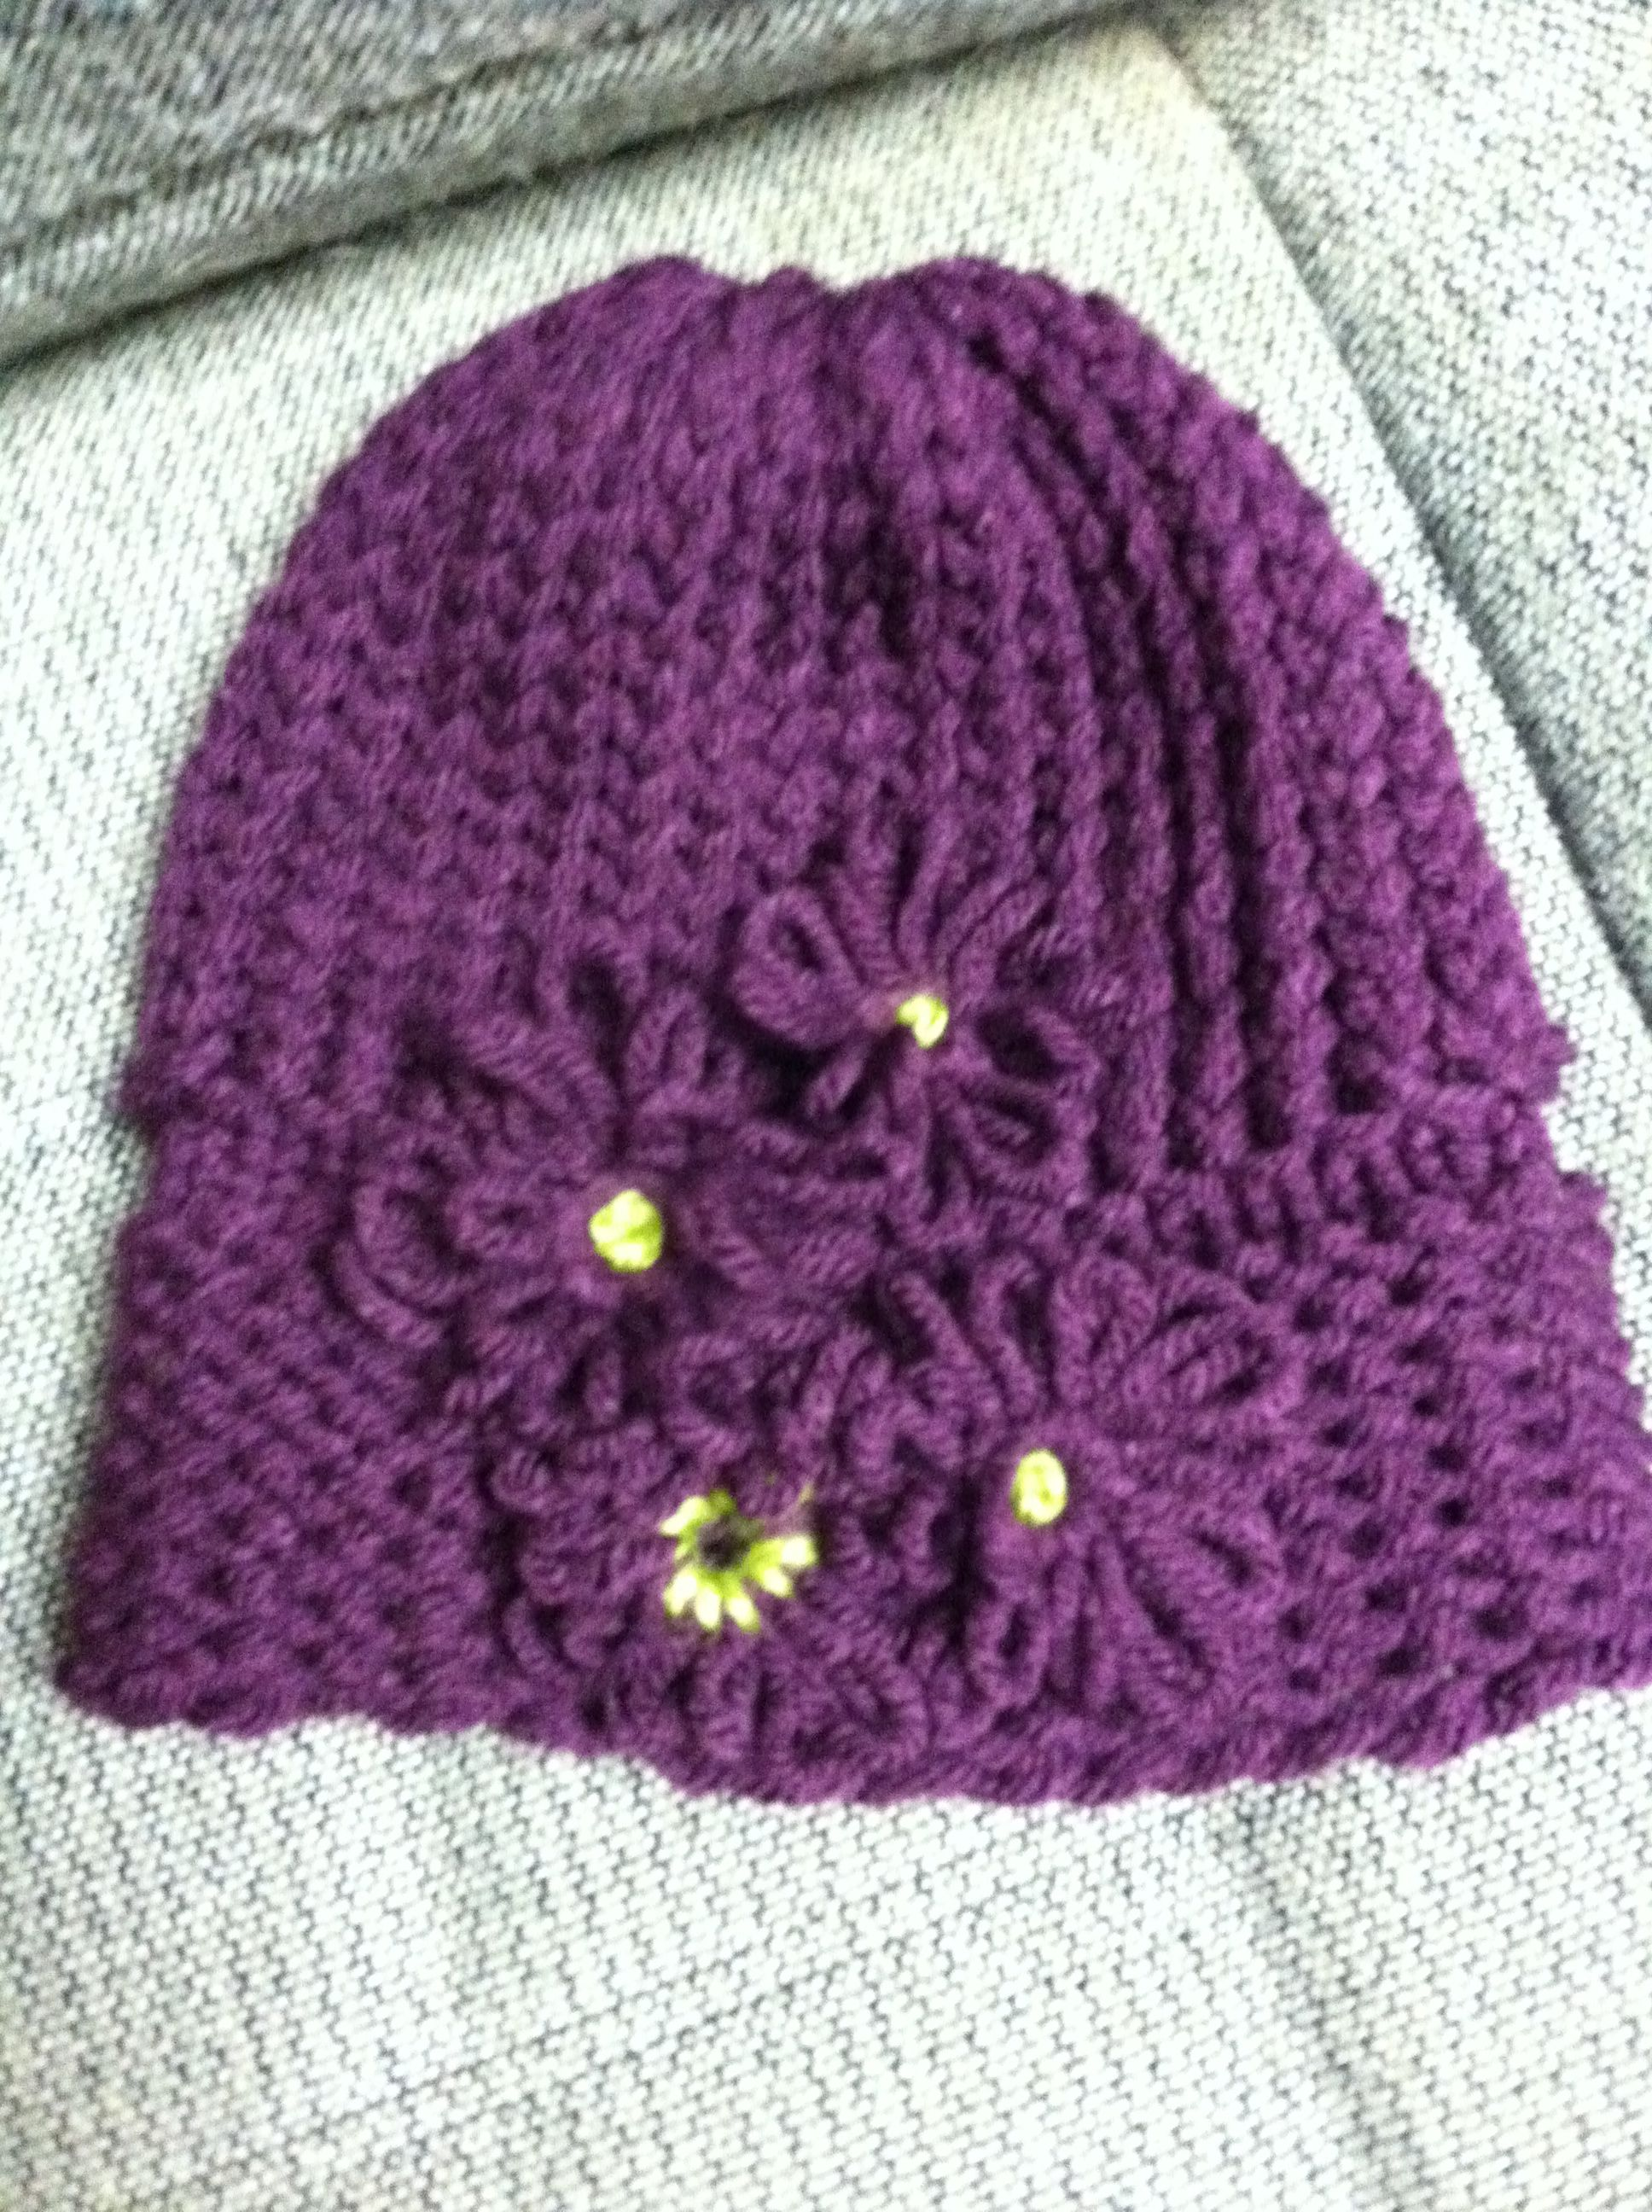 Loom Knit Baby Hat Pattern Free : Loom knitted hat knitting pinterest knit